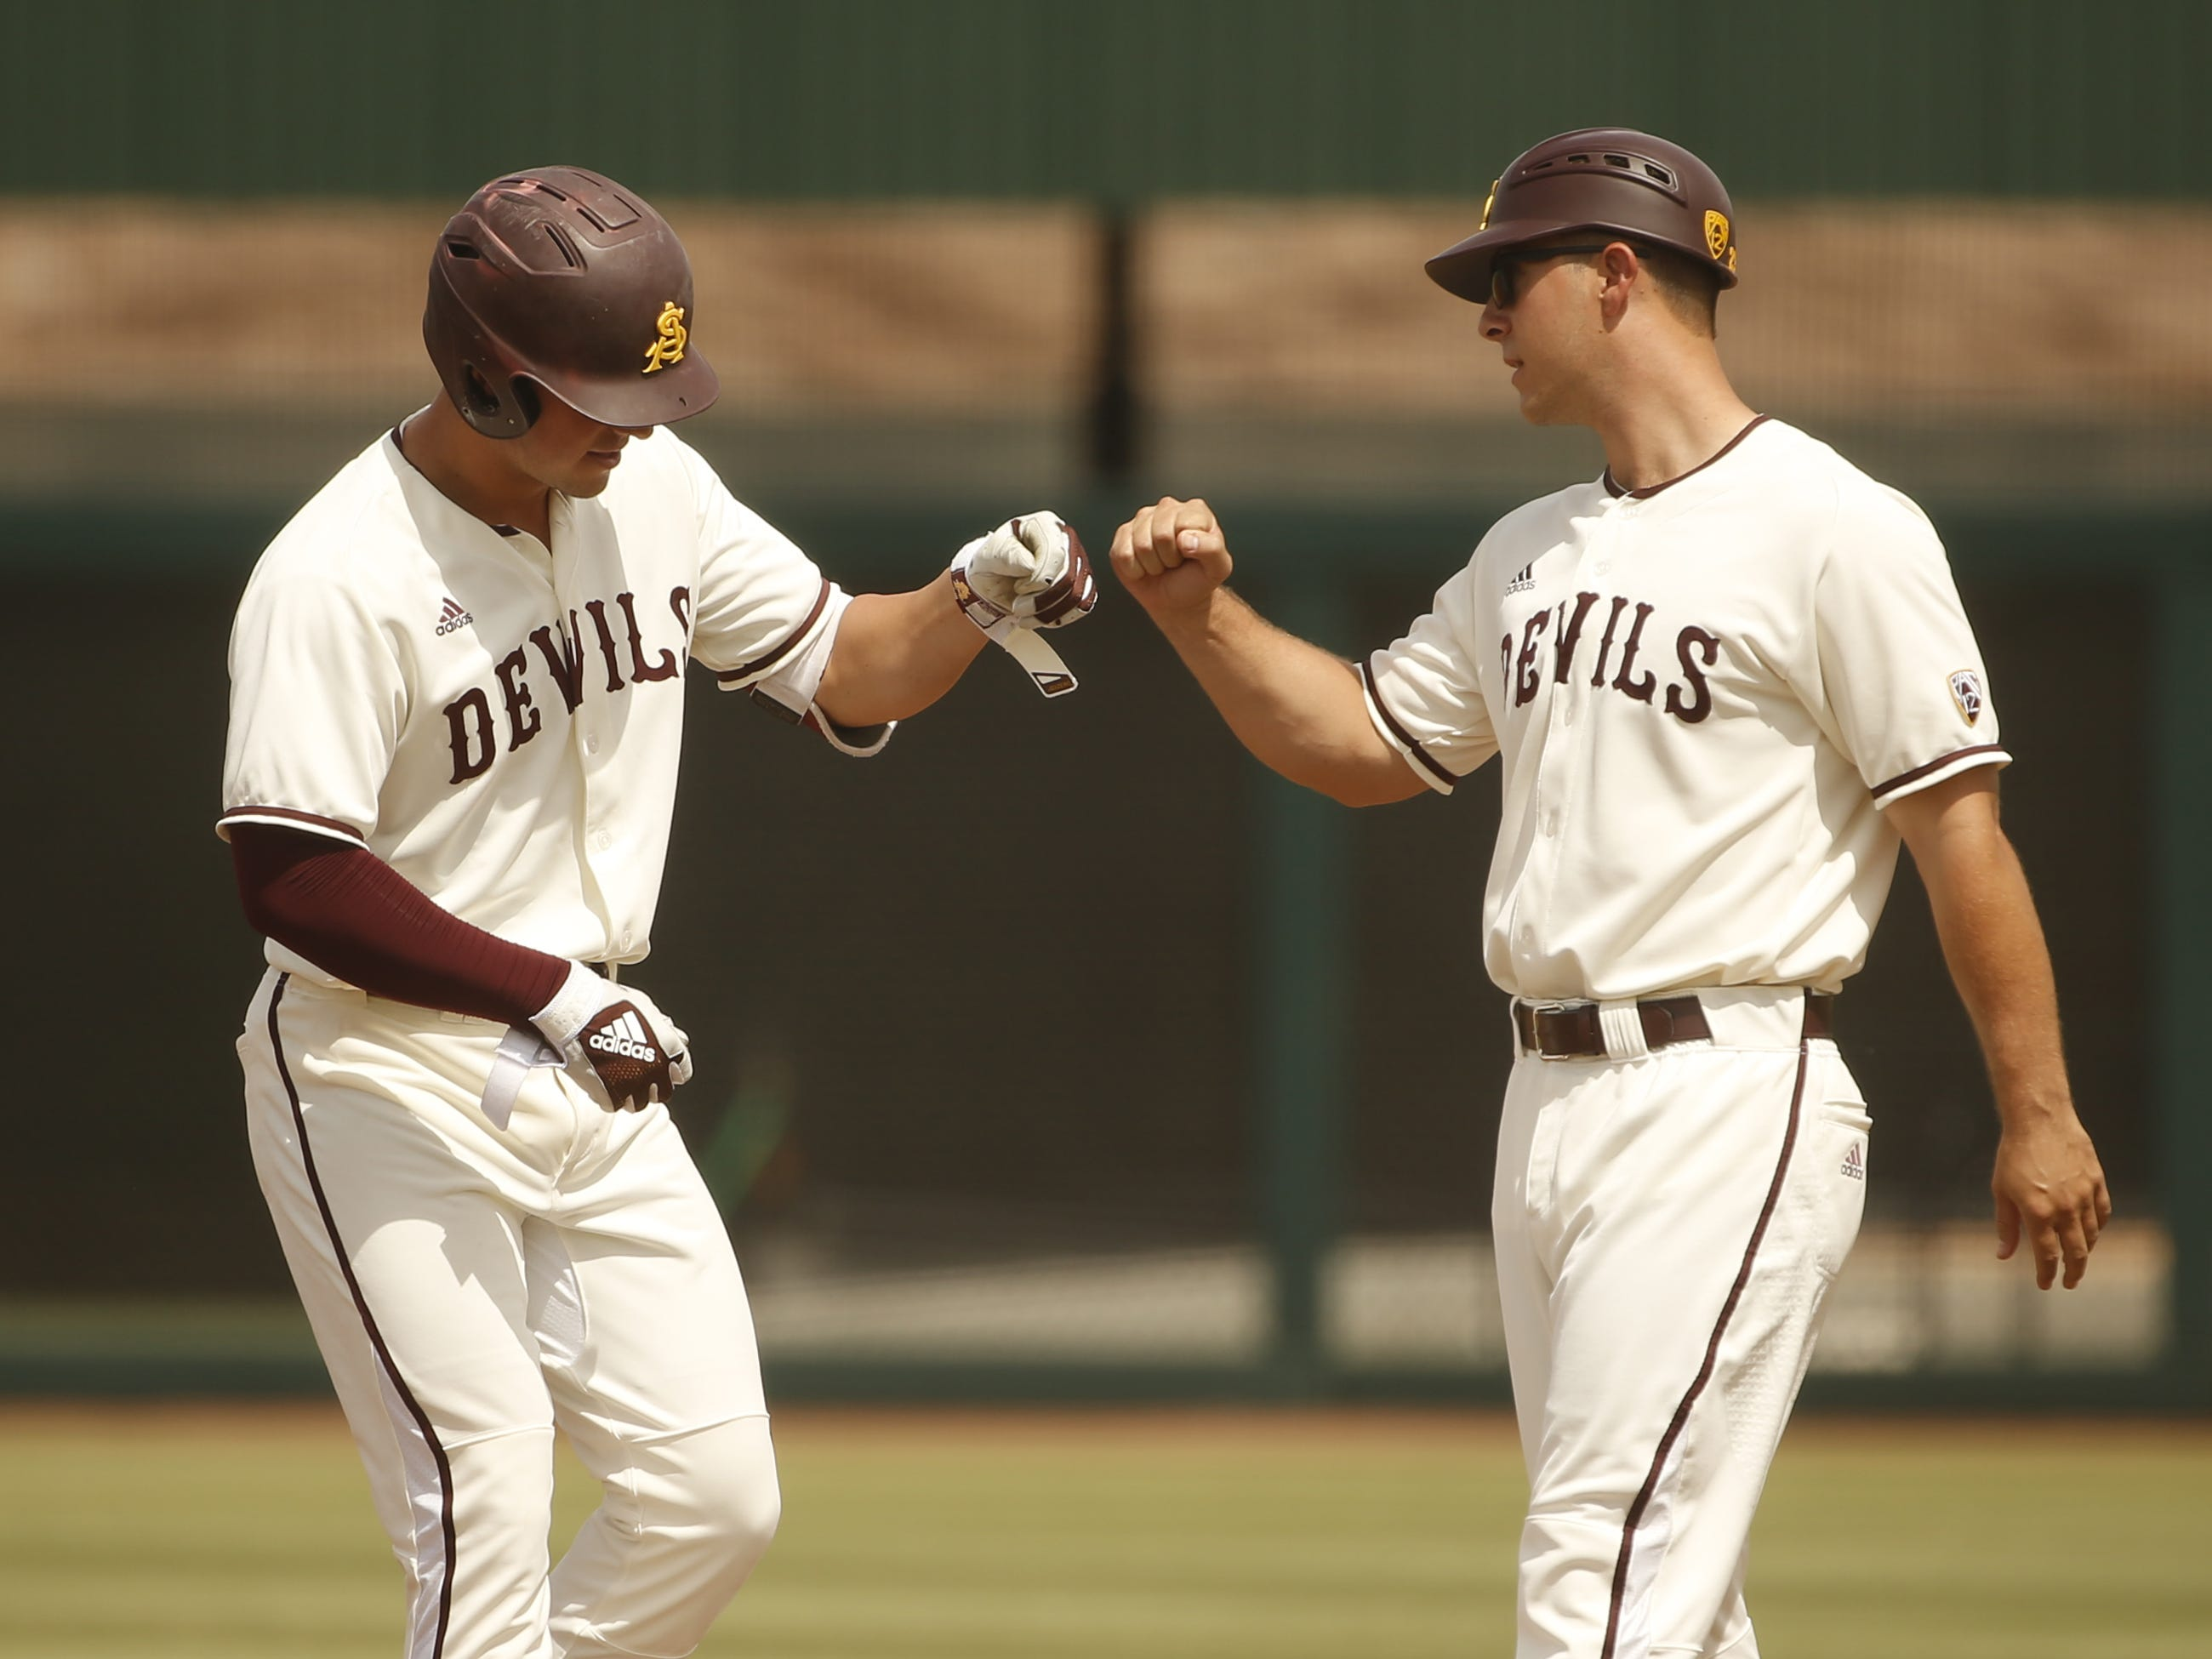 ASU's Spencer Torkelson (20) bumps fist with his first base coach during the first inning against UCLA at Phoenix Municipal Stadium in Phoenix, Ariz. on May 5, 2019.